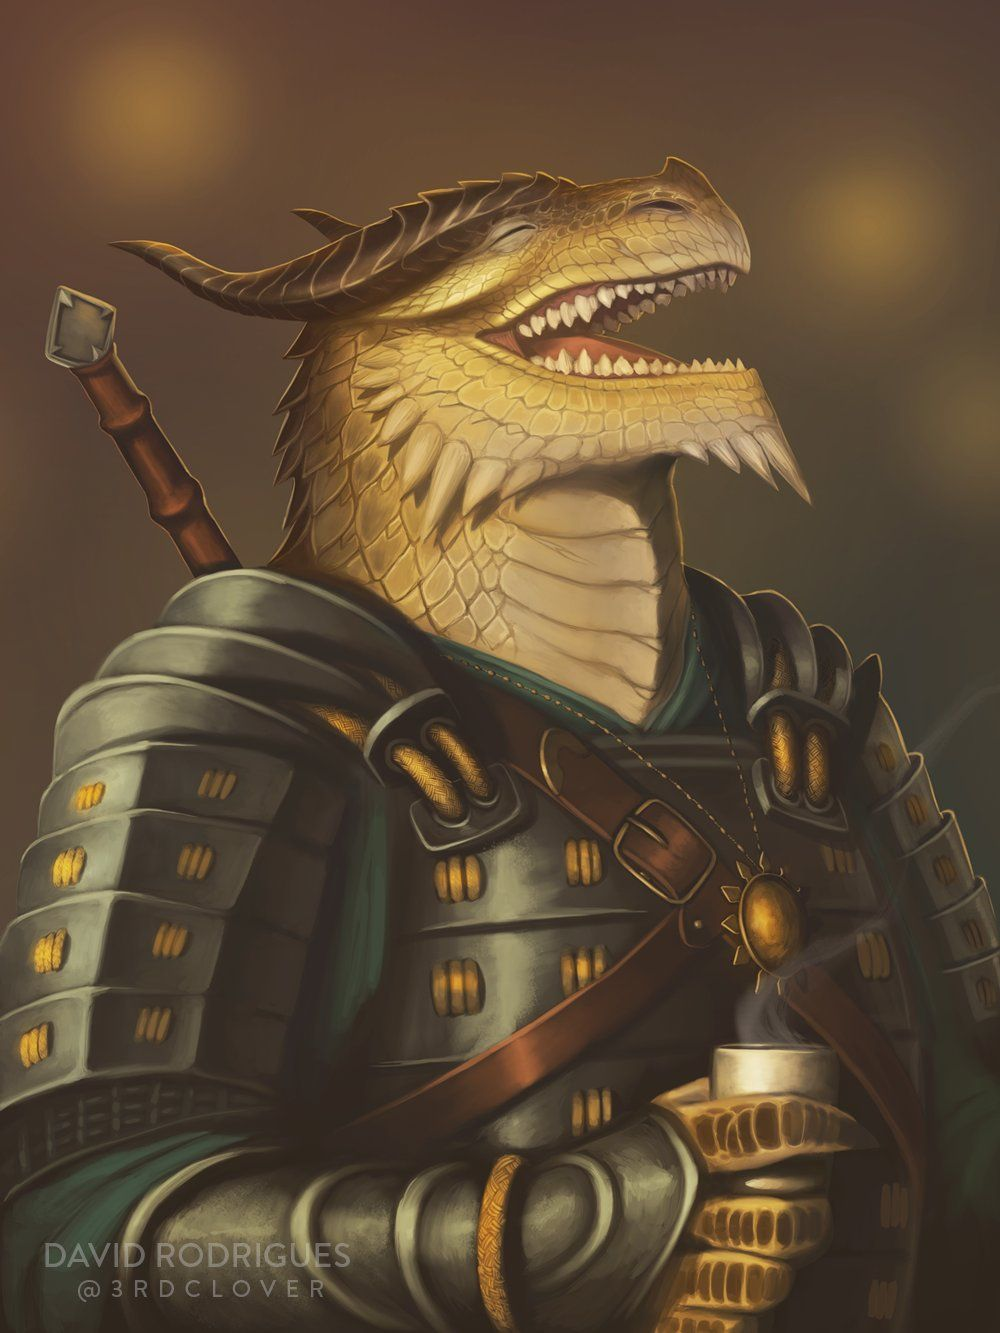 M gold dragonborn fighter paladin | Dungeons and dragons characters, Fantasy character design ...